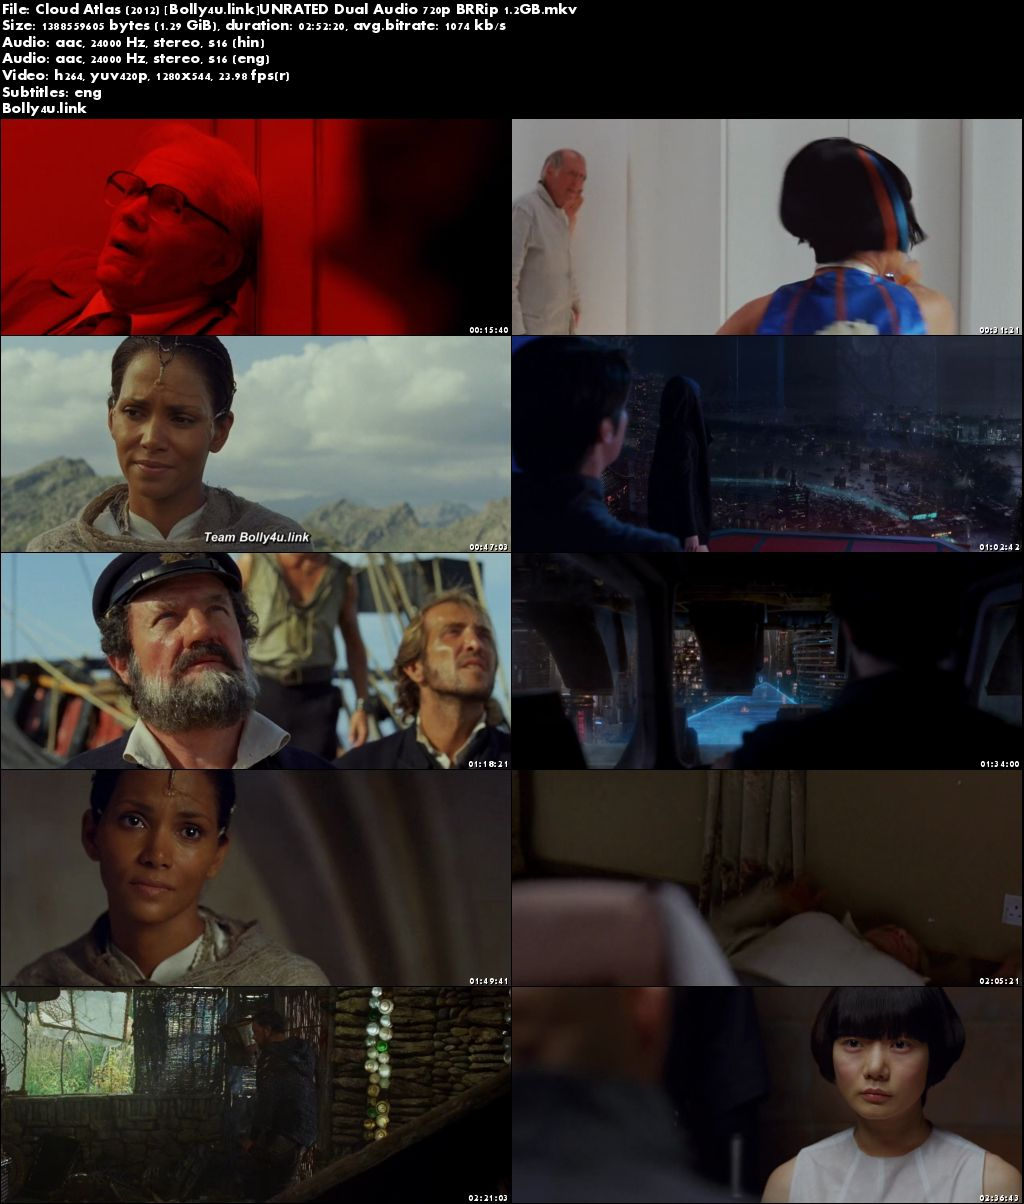 Cloud Atlas 2012 BluRay UNRATED Hindi Dual Audio 720p Download